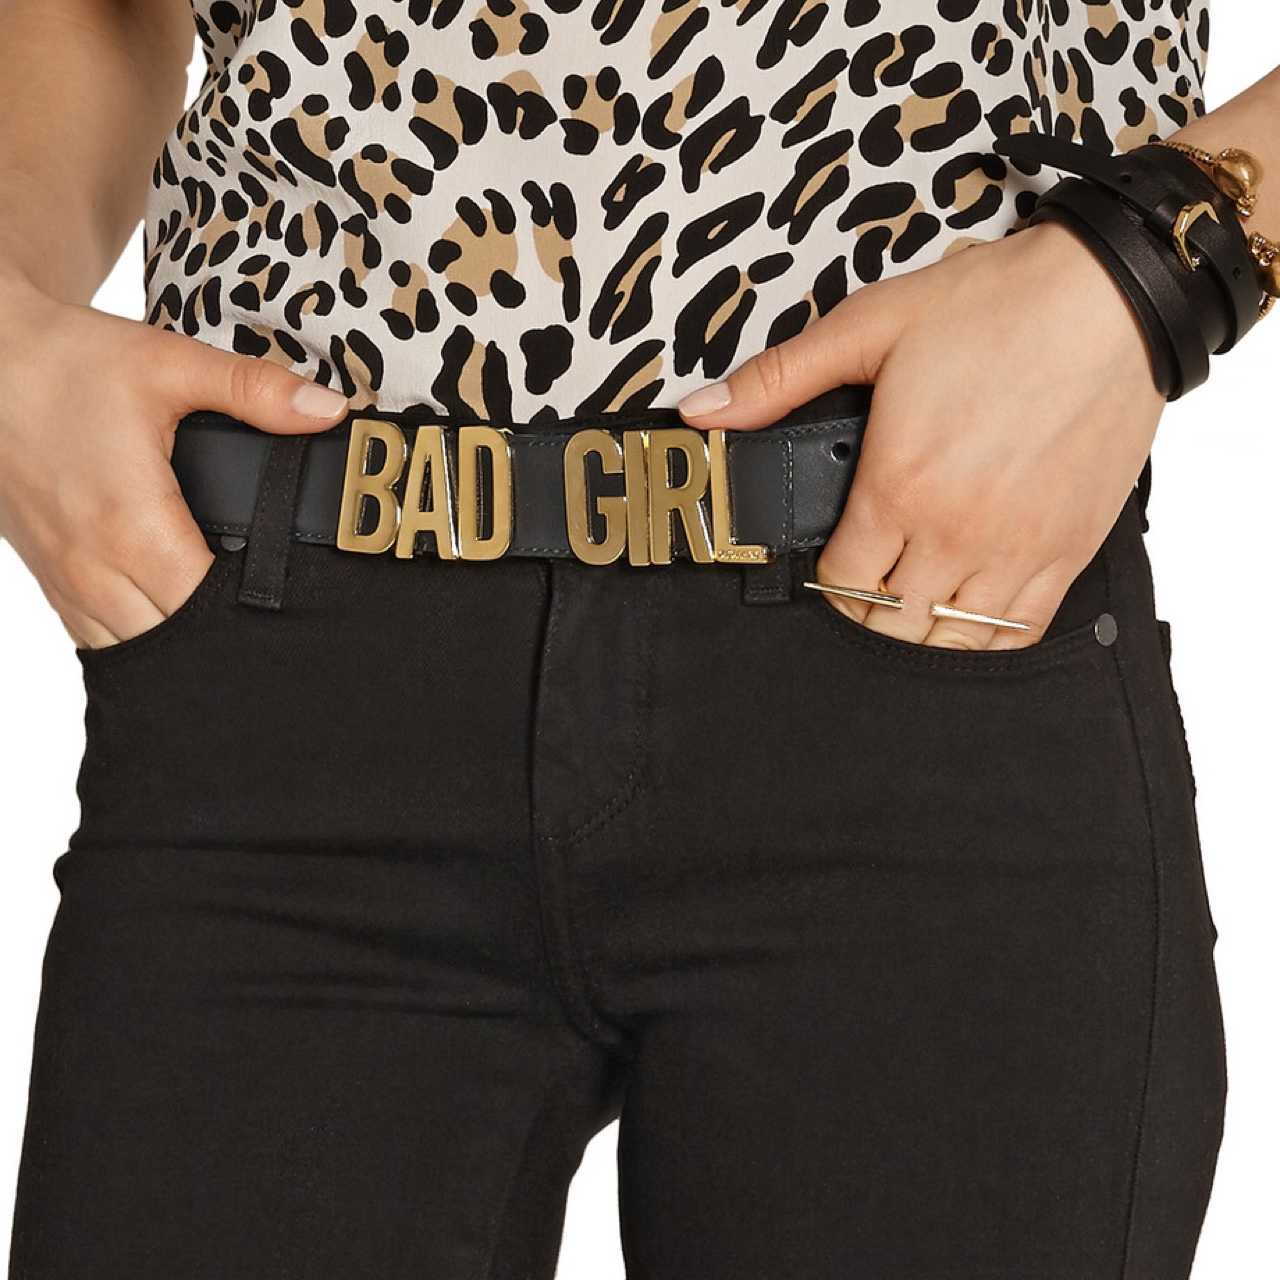 MOSCHINO Couture Bad Girl leather belt Black Leather Gold Bu